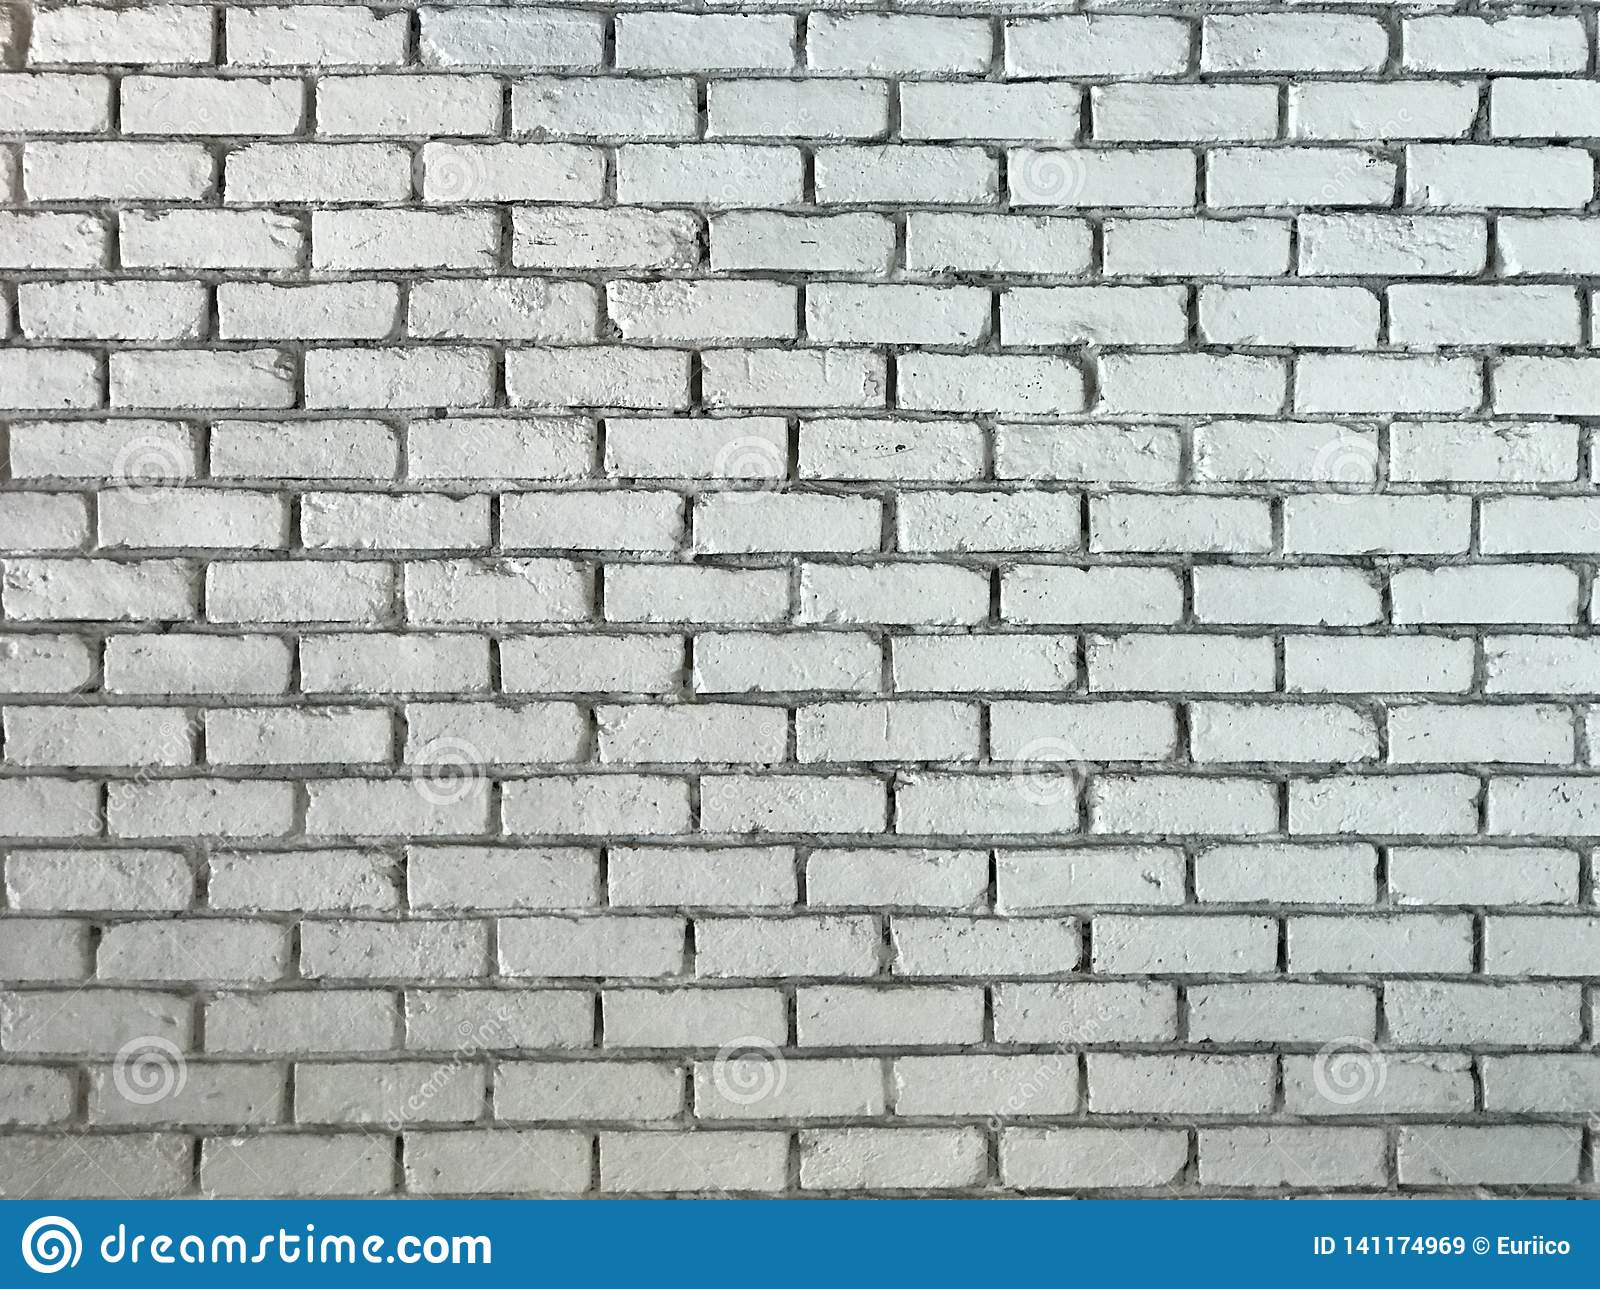 Rustic old white Brick Wall Background Image